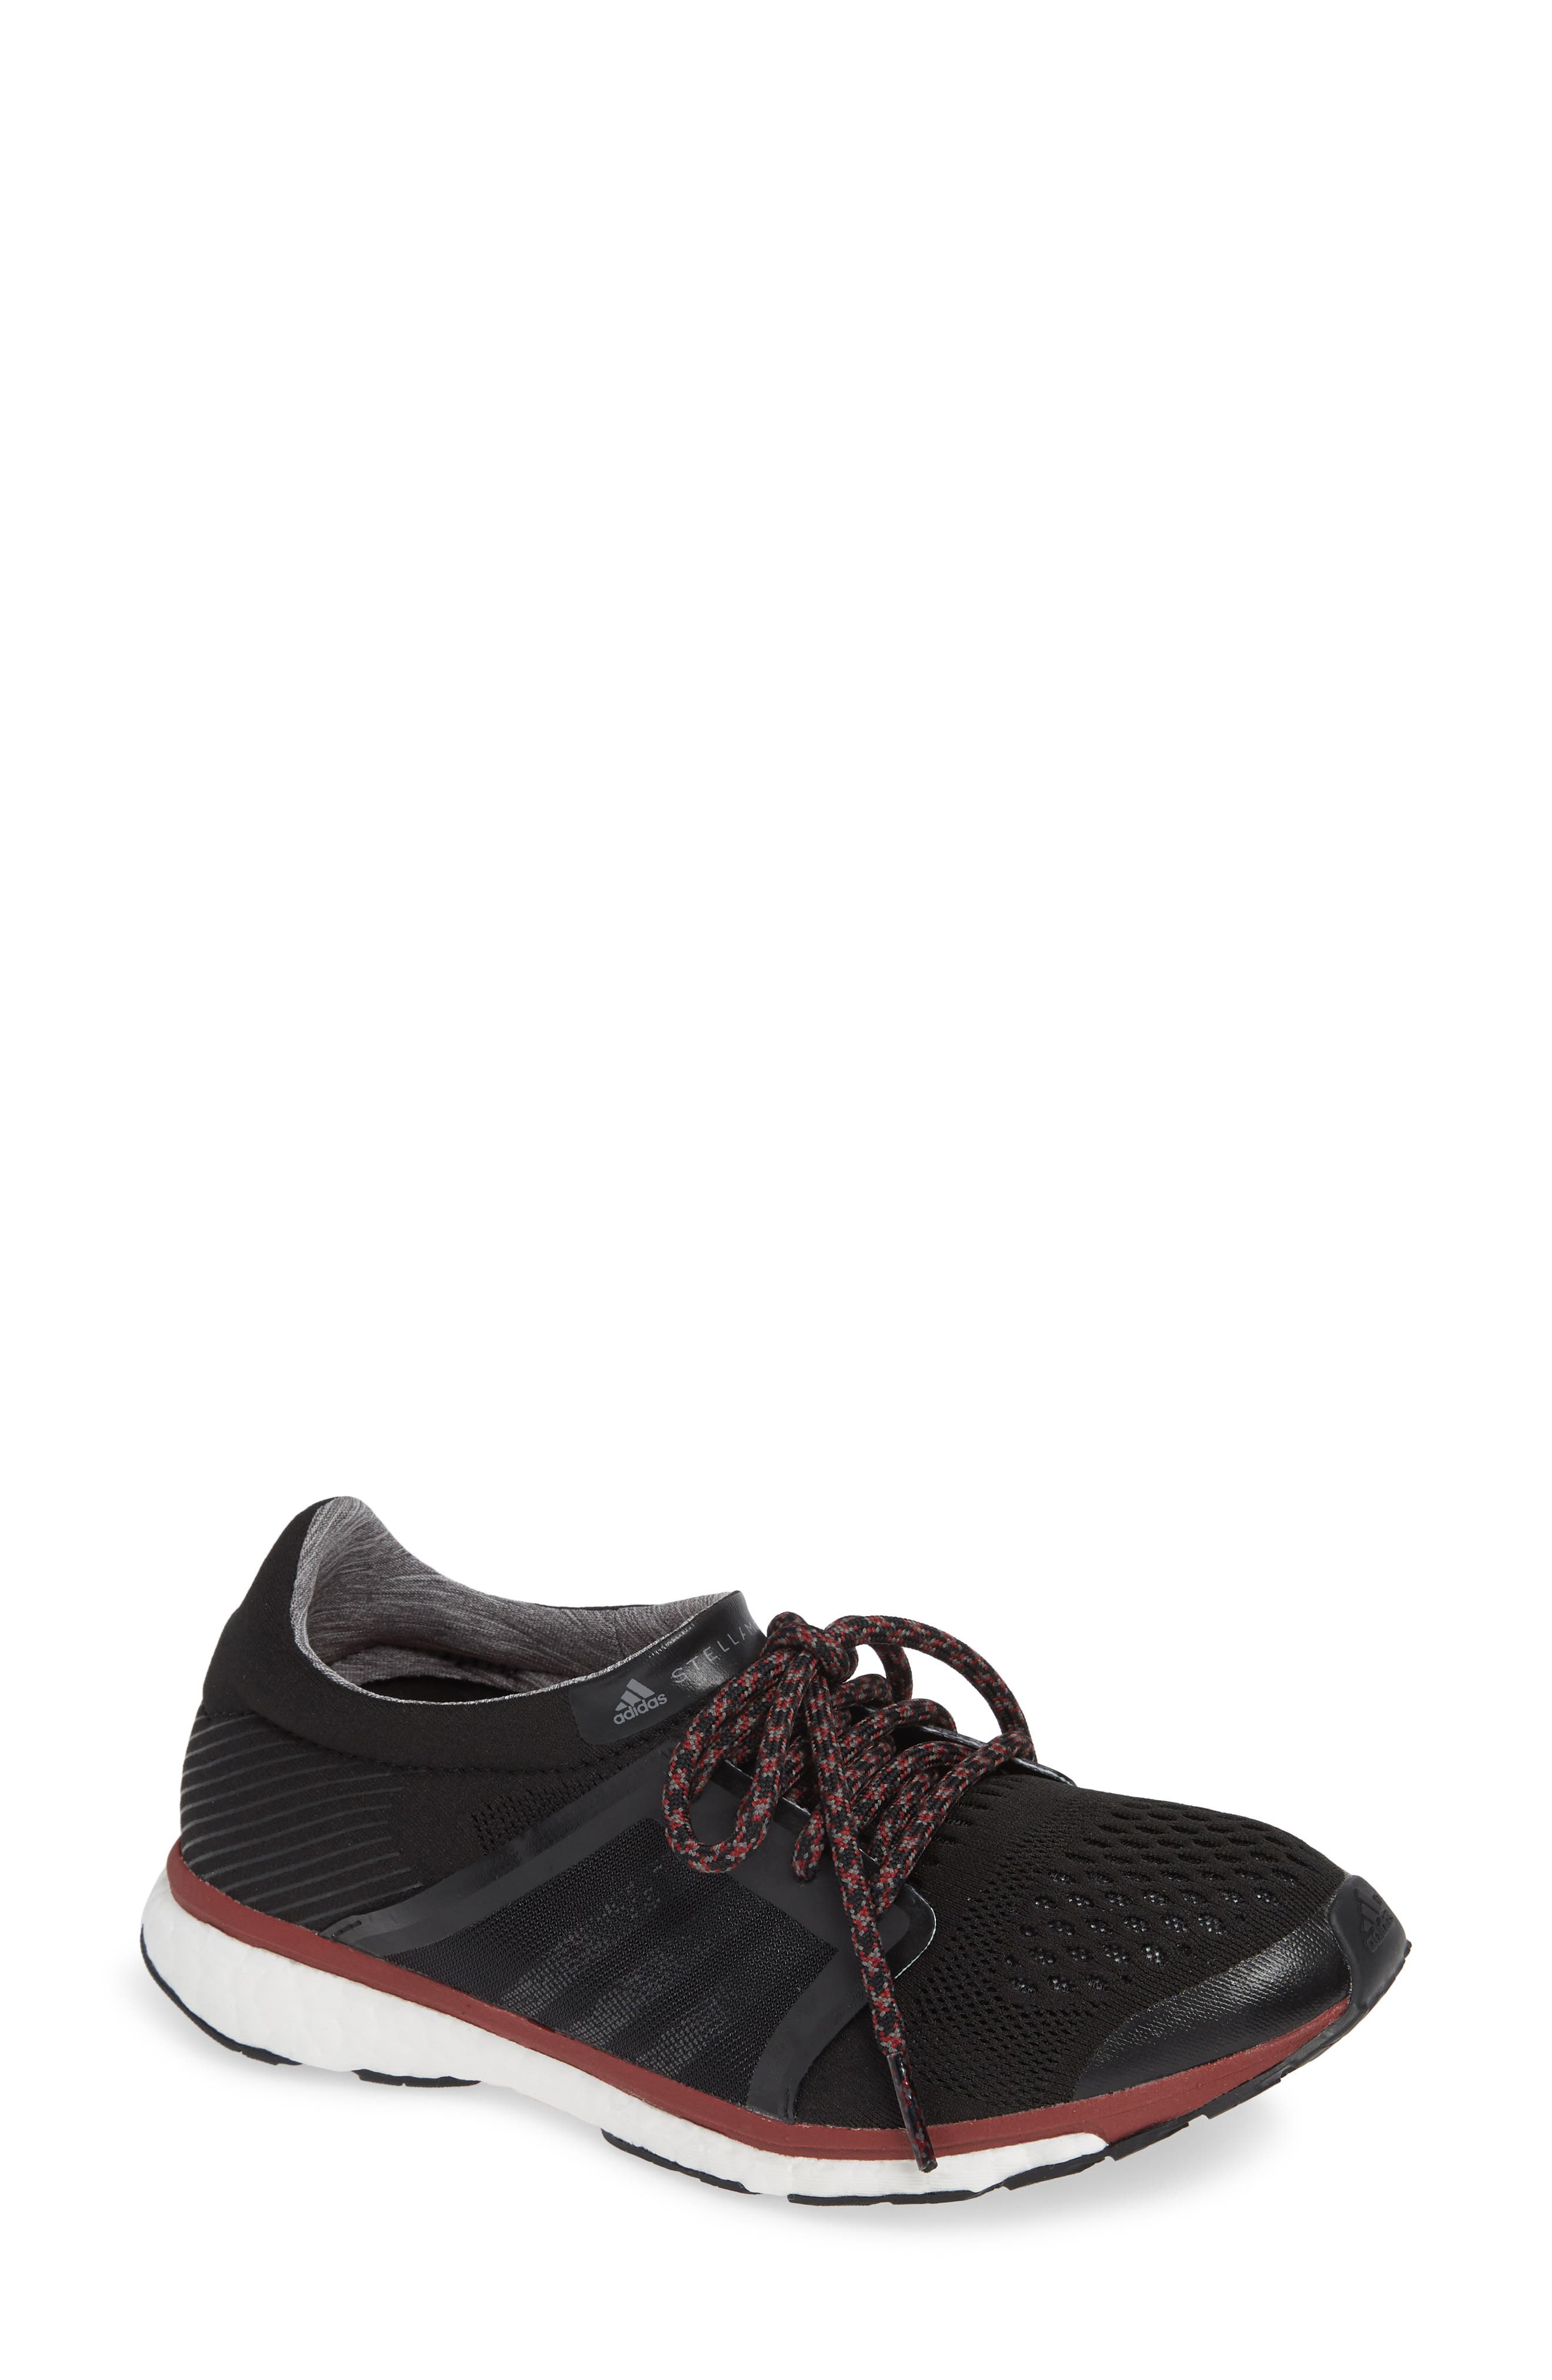 by Stella McCartney Adizero Adios Running Shoe,                         Main,                         color, 001